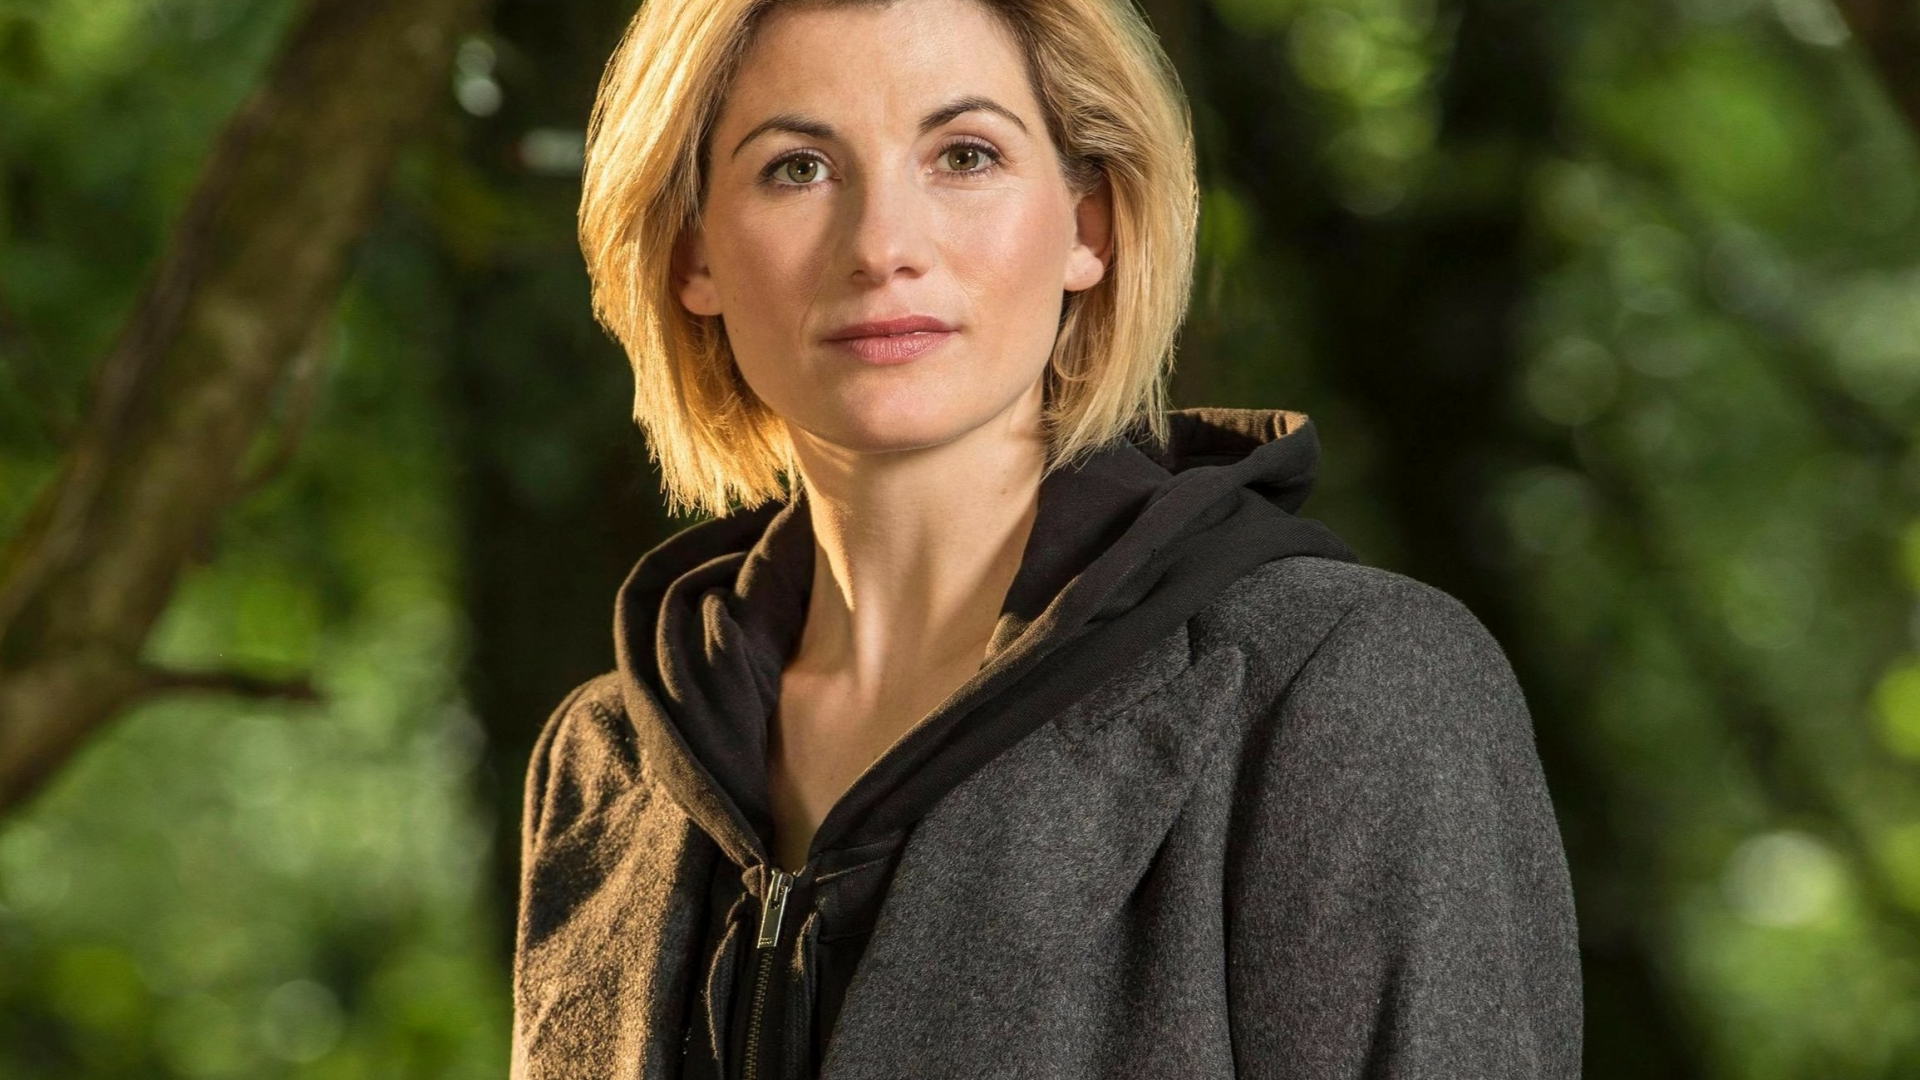 1920x1080 Jodie Whittaker From Doctor Who 1080p Laptop Full Hd